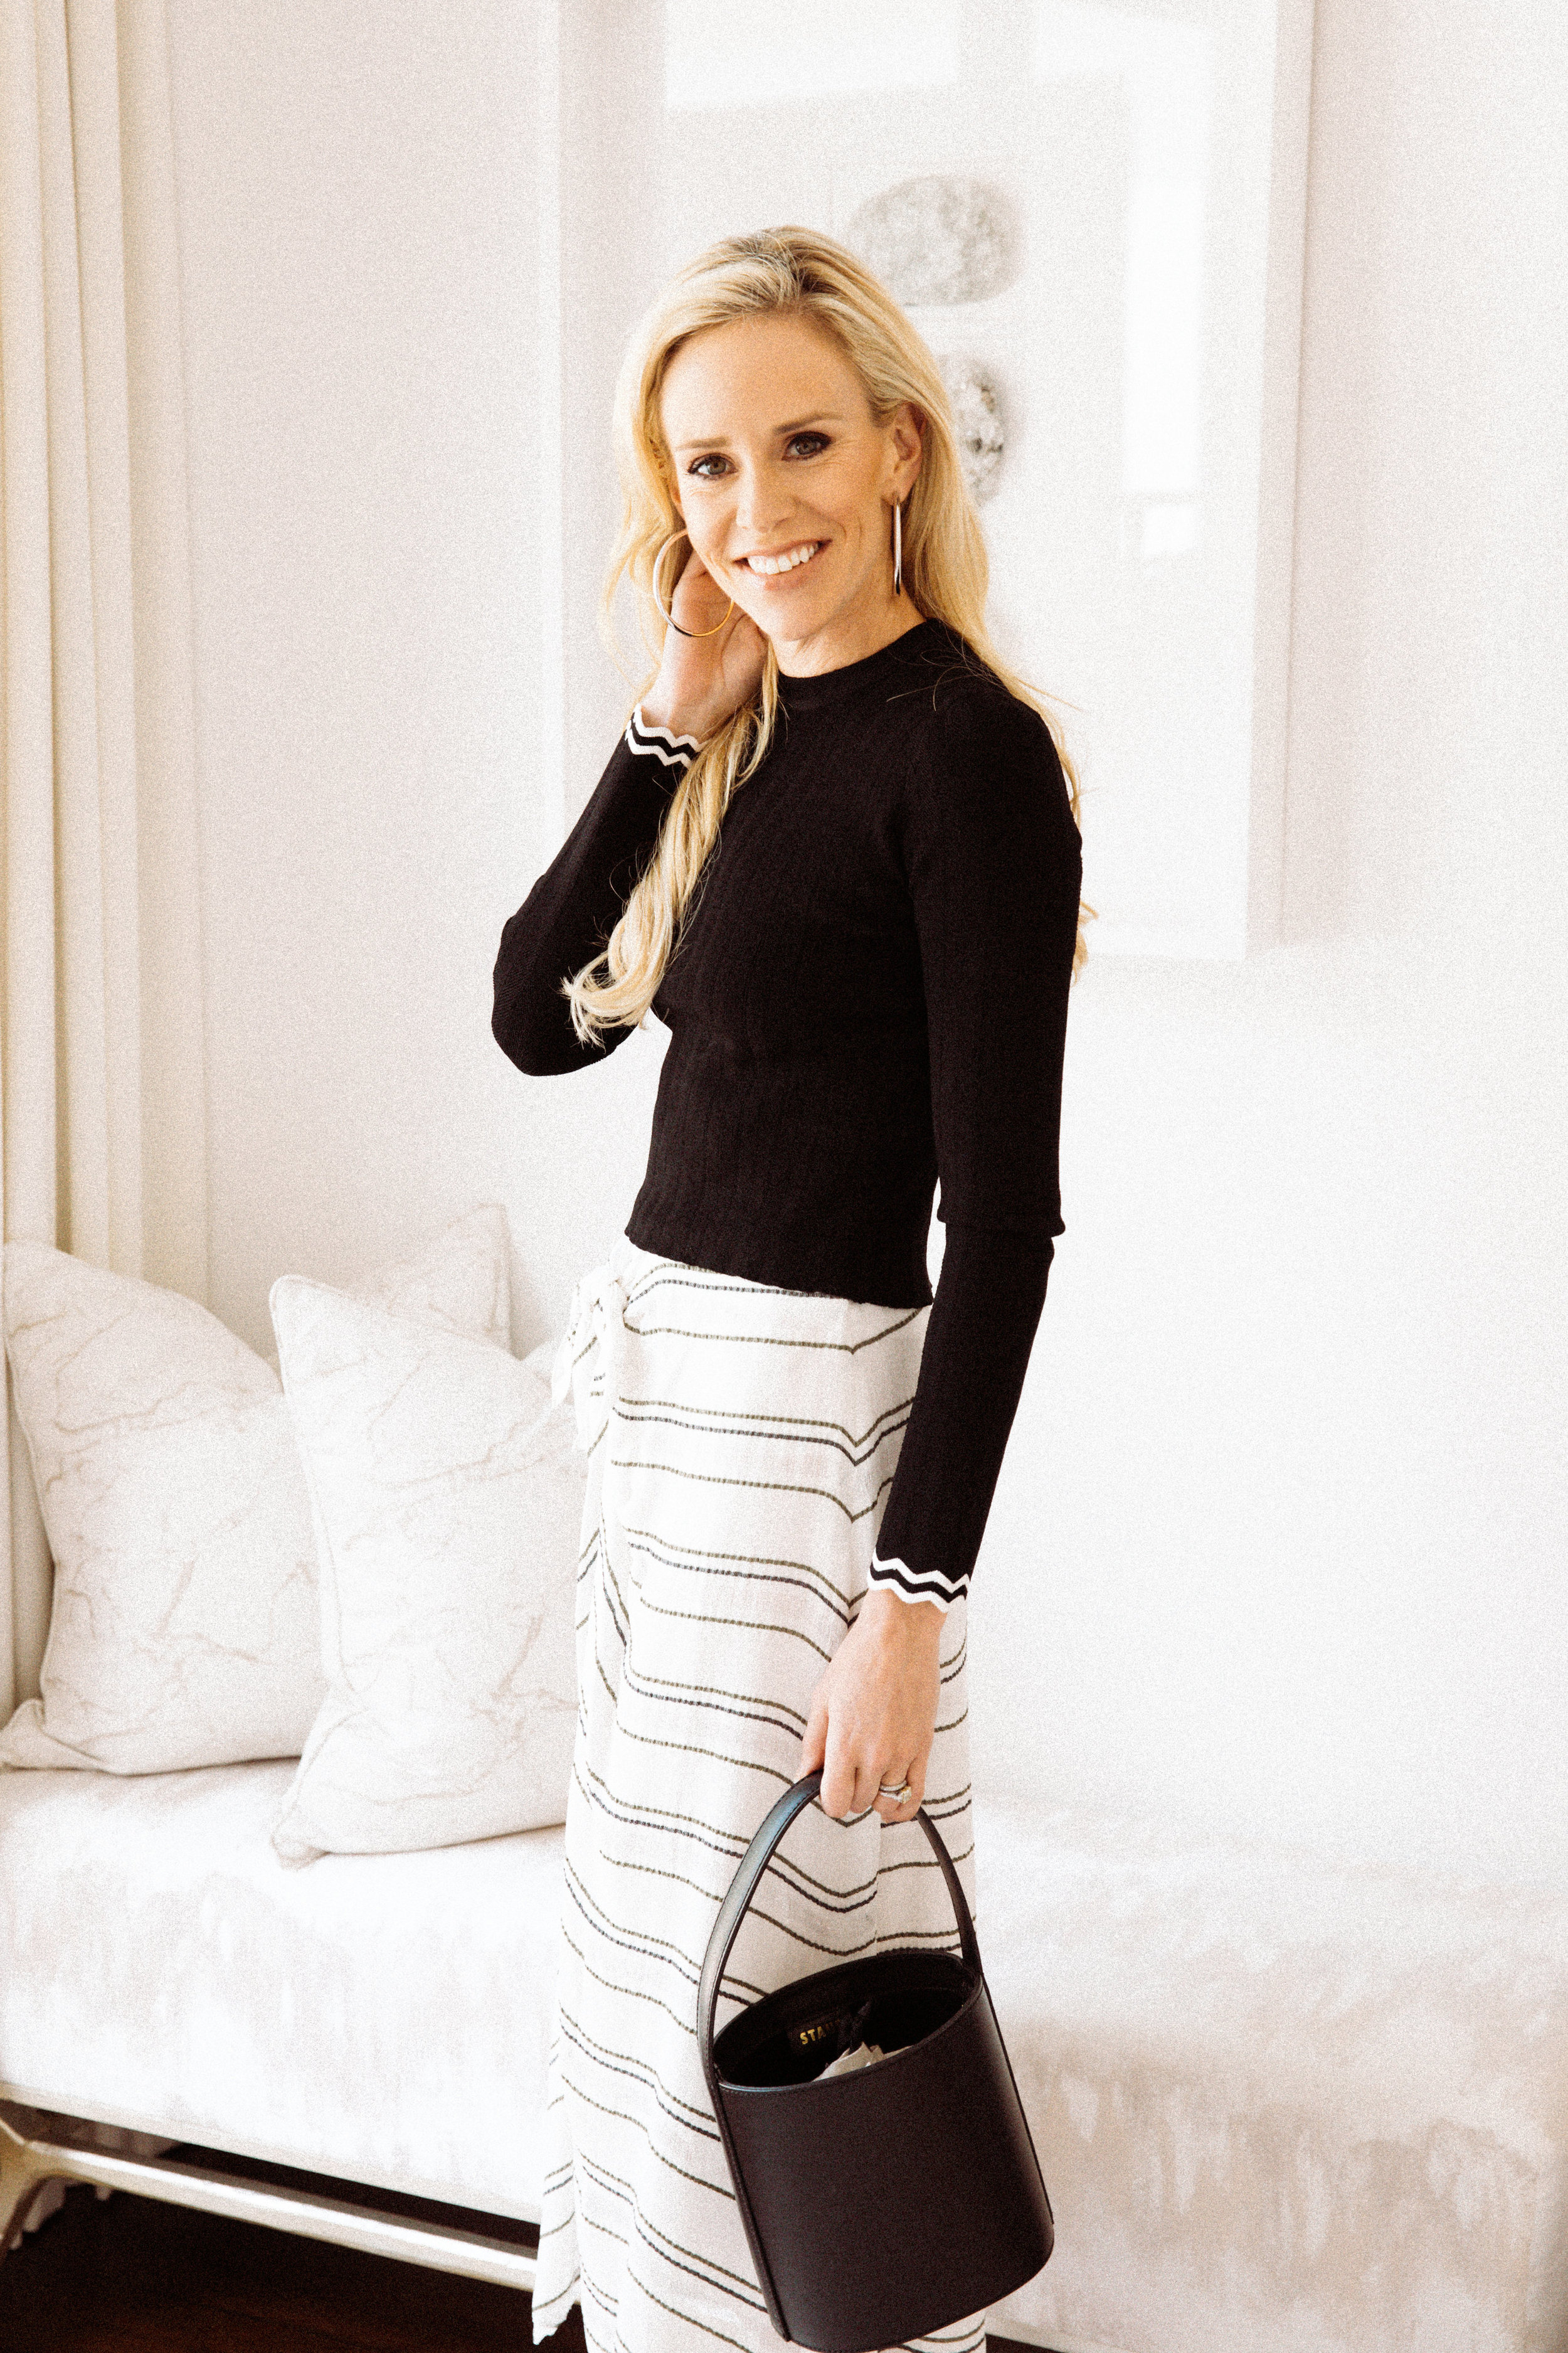 When freezing winter days warm up to cold spring weather, what's a girl to wear?  Cue the ever-so-versatile transitional spring outfits for 2019. Transitional pieces take you from winter to spring with style and grace. They hint that true spring colors and fabrics have (almost) arrived, but are savvy in knowing that this time of year promises fluctuation in temperatures. While you may be questioning when to start dressing for spring and what to wear on those chilly spring days, I've got you covered with everything you need from transitional spring shoes to lightweight jackets and everything in between!